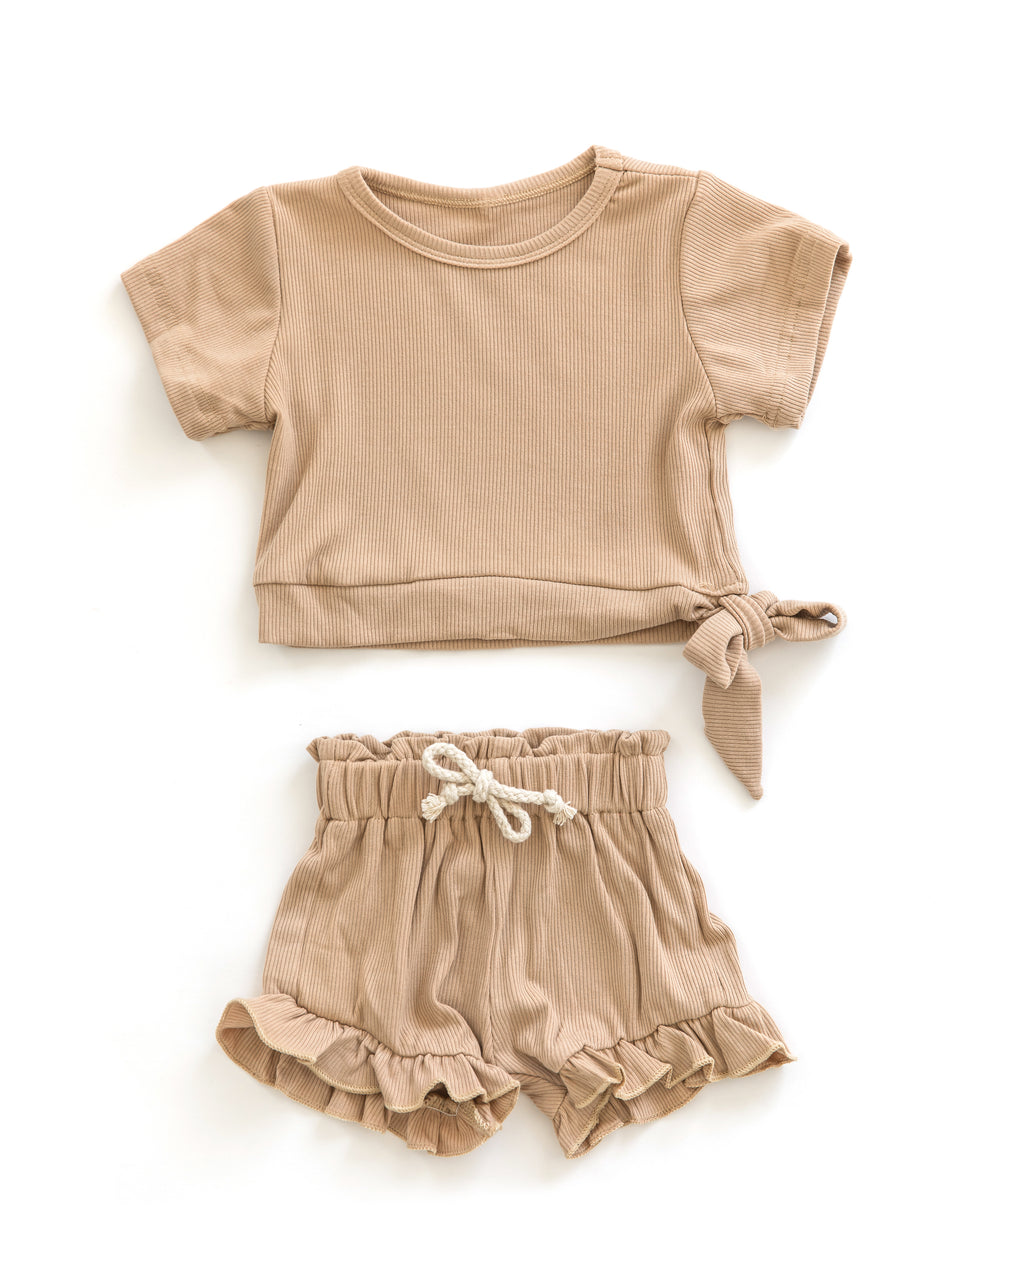 Tia Outfit in Caramel - Reverie Threads